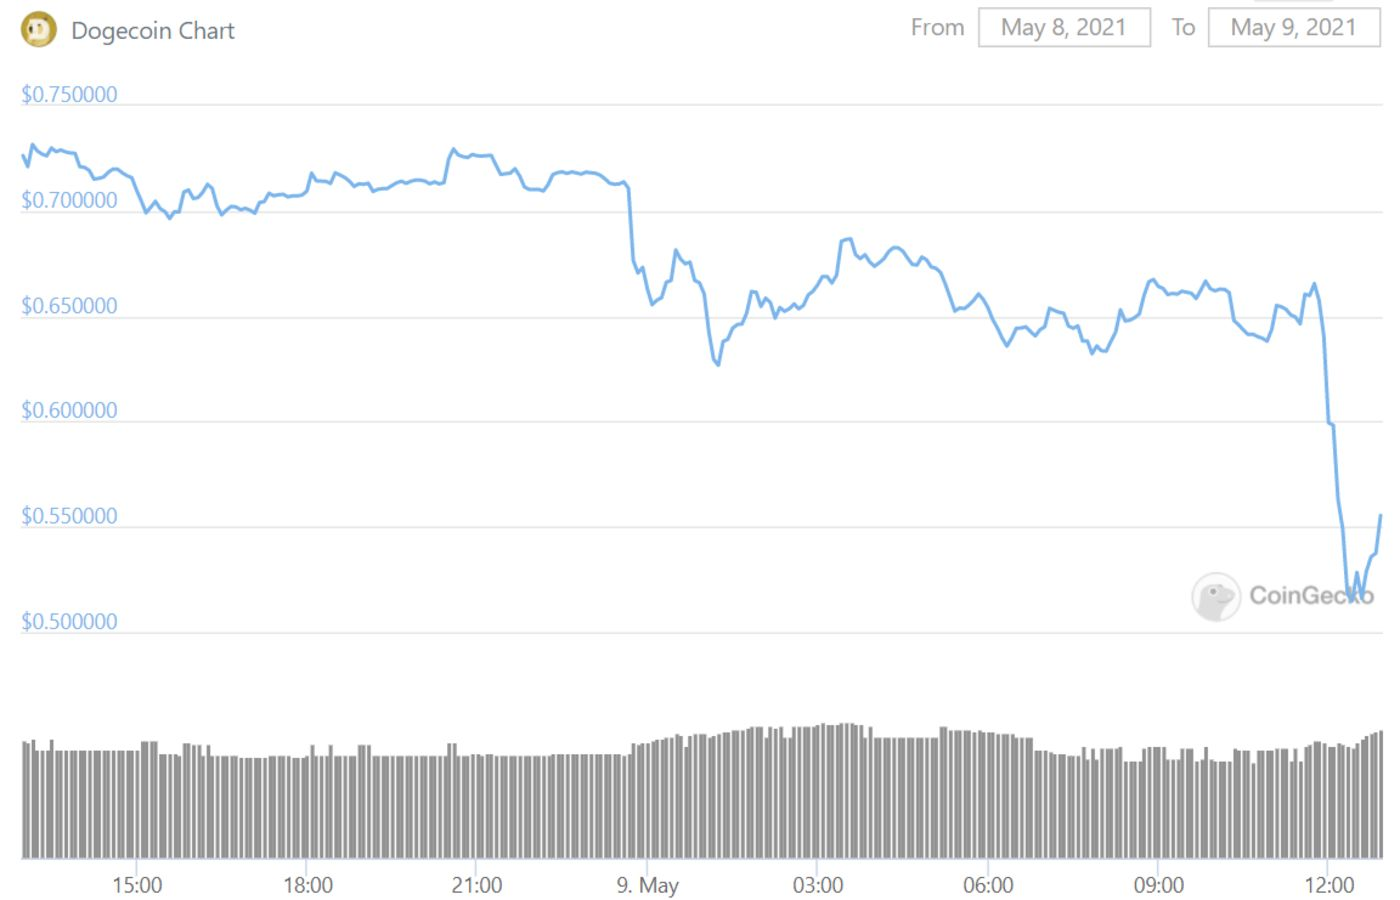 relates to Dogecoin Plunges as Musk Hosts 'SNL' Calling It 'a Hustle'